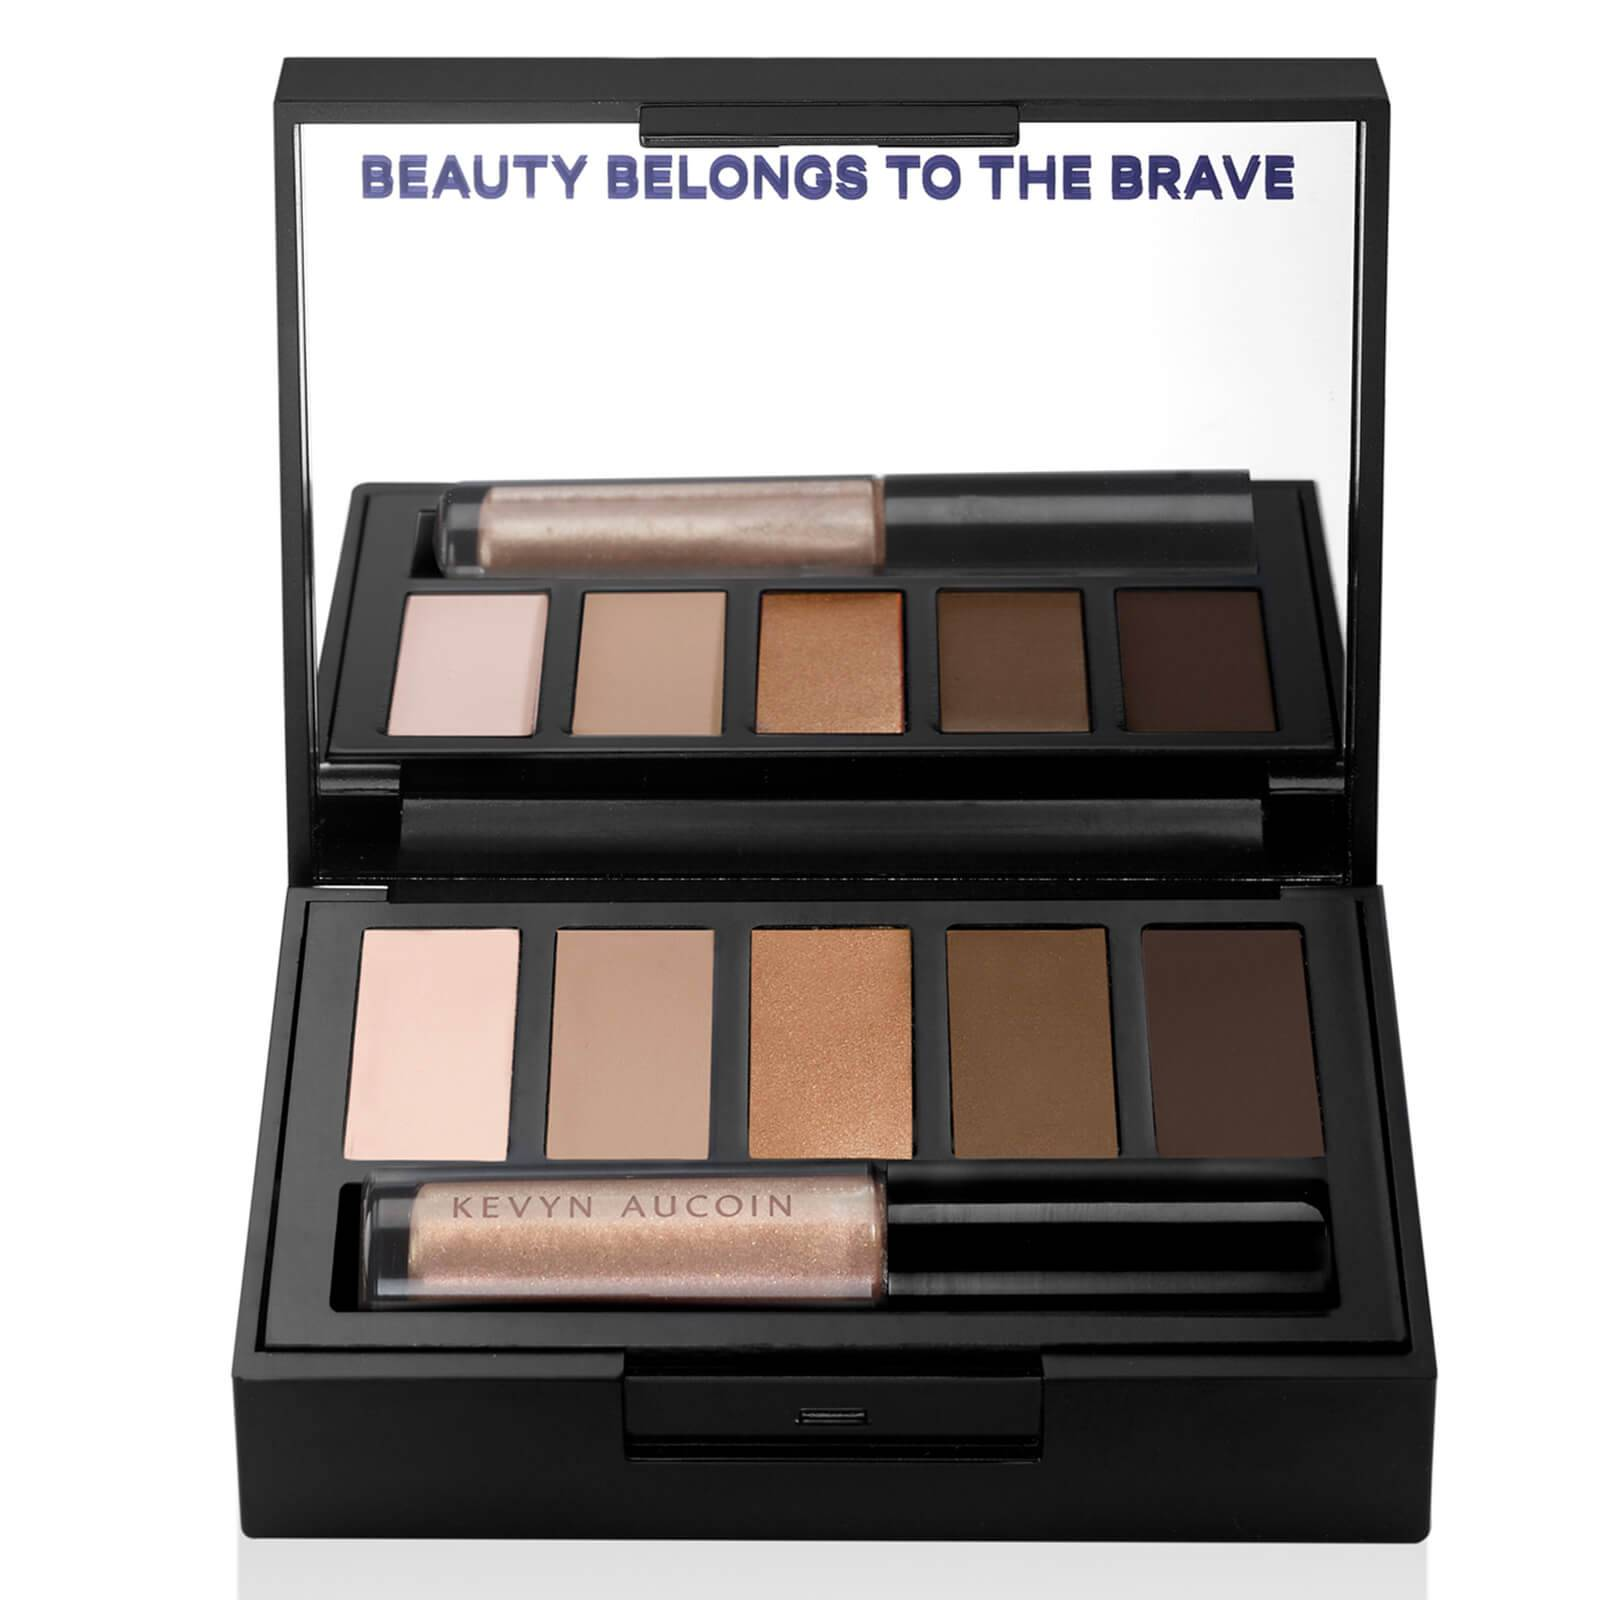 Kevyn Aucoin Emphasize Eye Design palette di ombretti - Unblinking